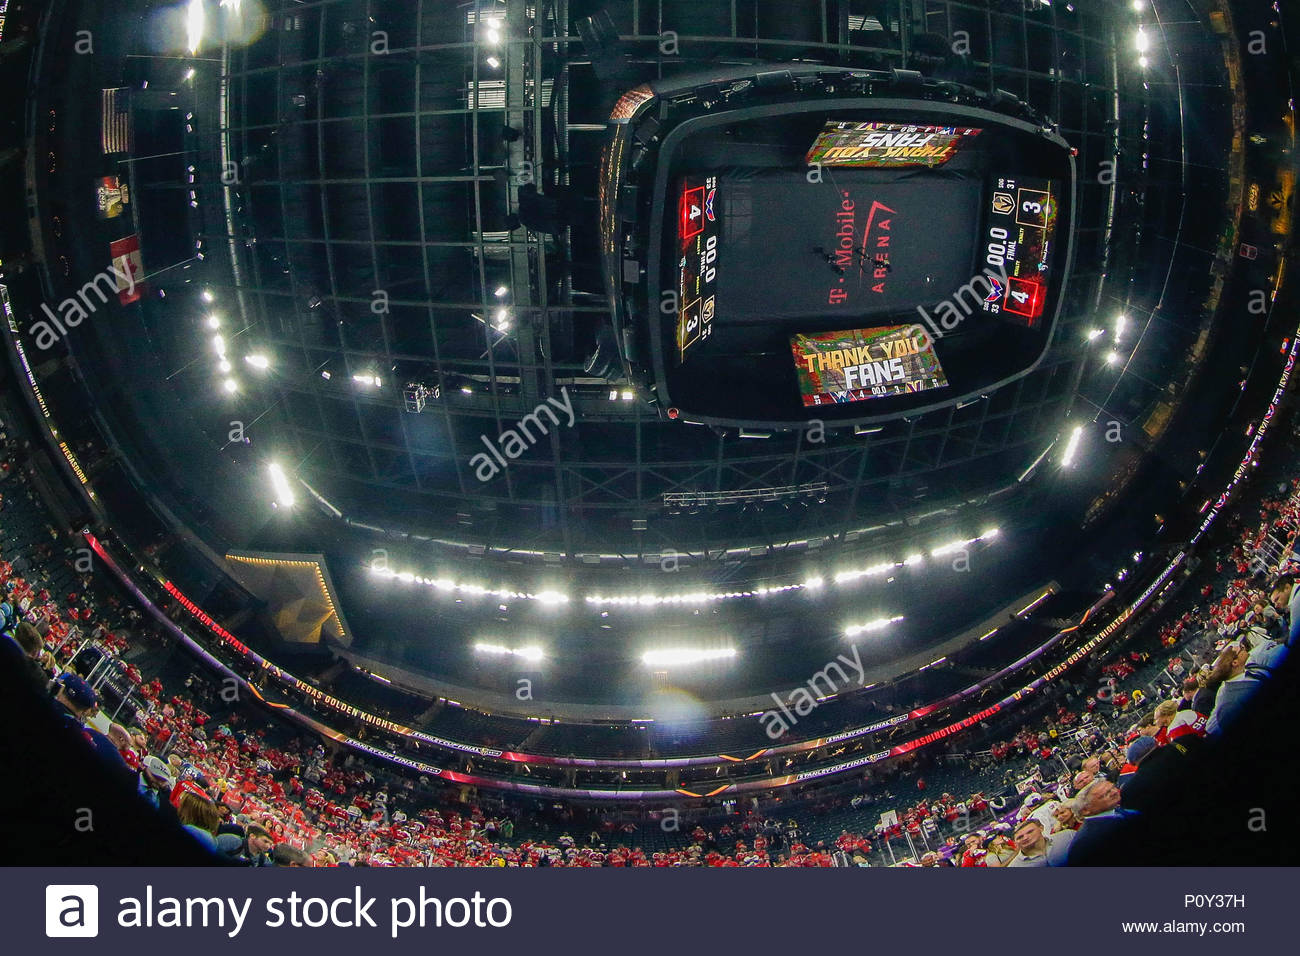 las vegas nv usa 7th june 2018 view of arena scoreboard with